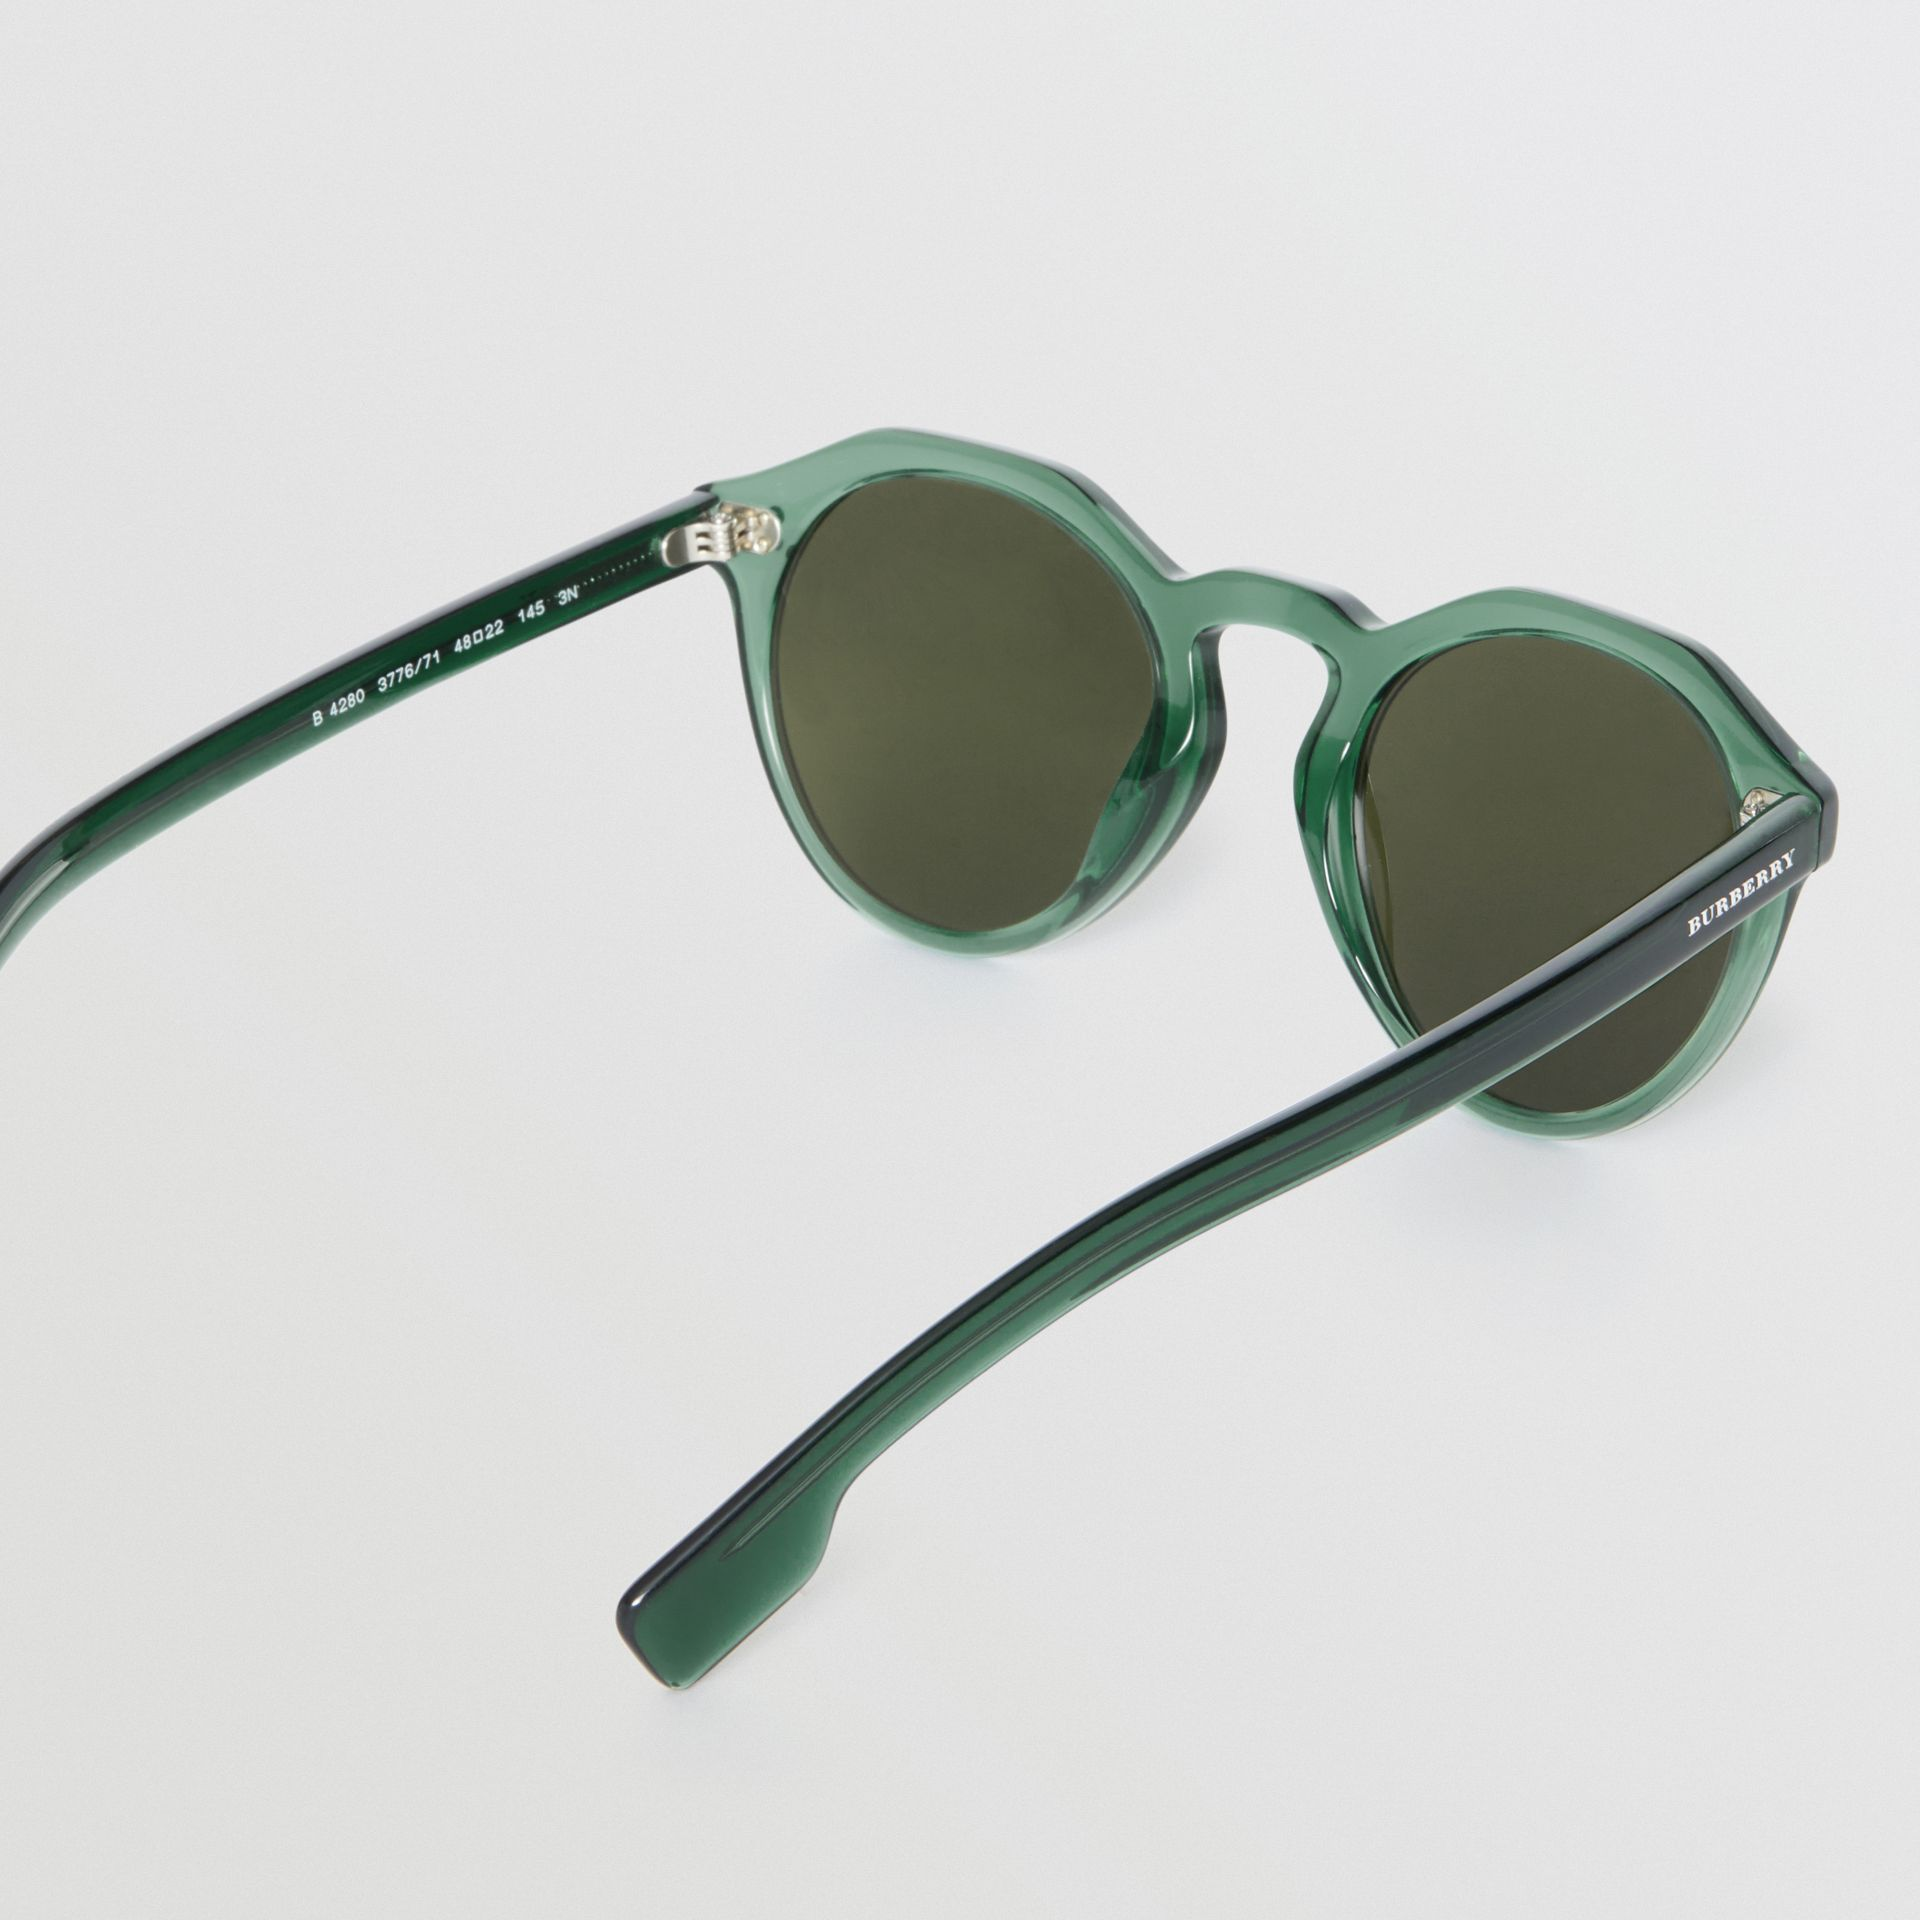 Keyhole Round Frame Sunglasses in Green - Men | Burberry - gallery image 4